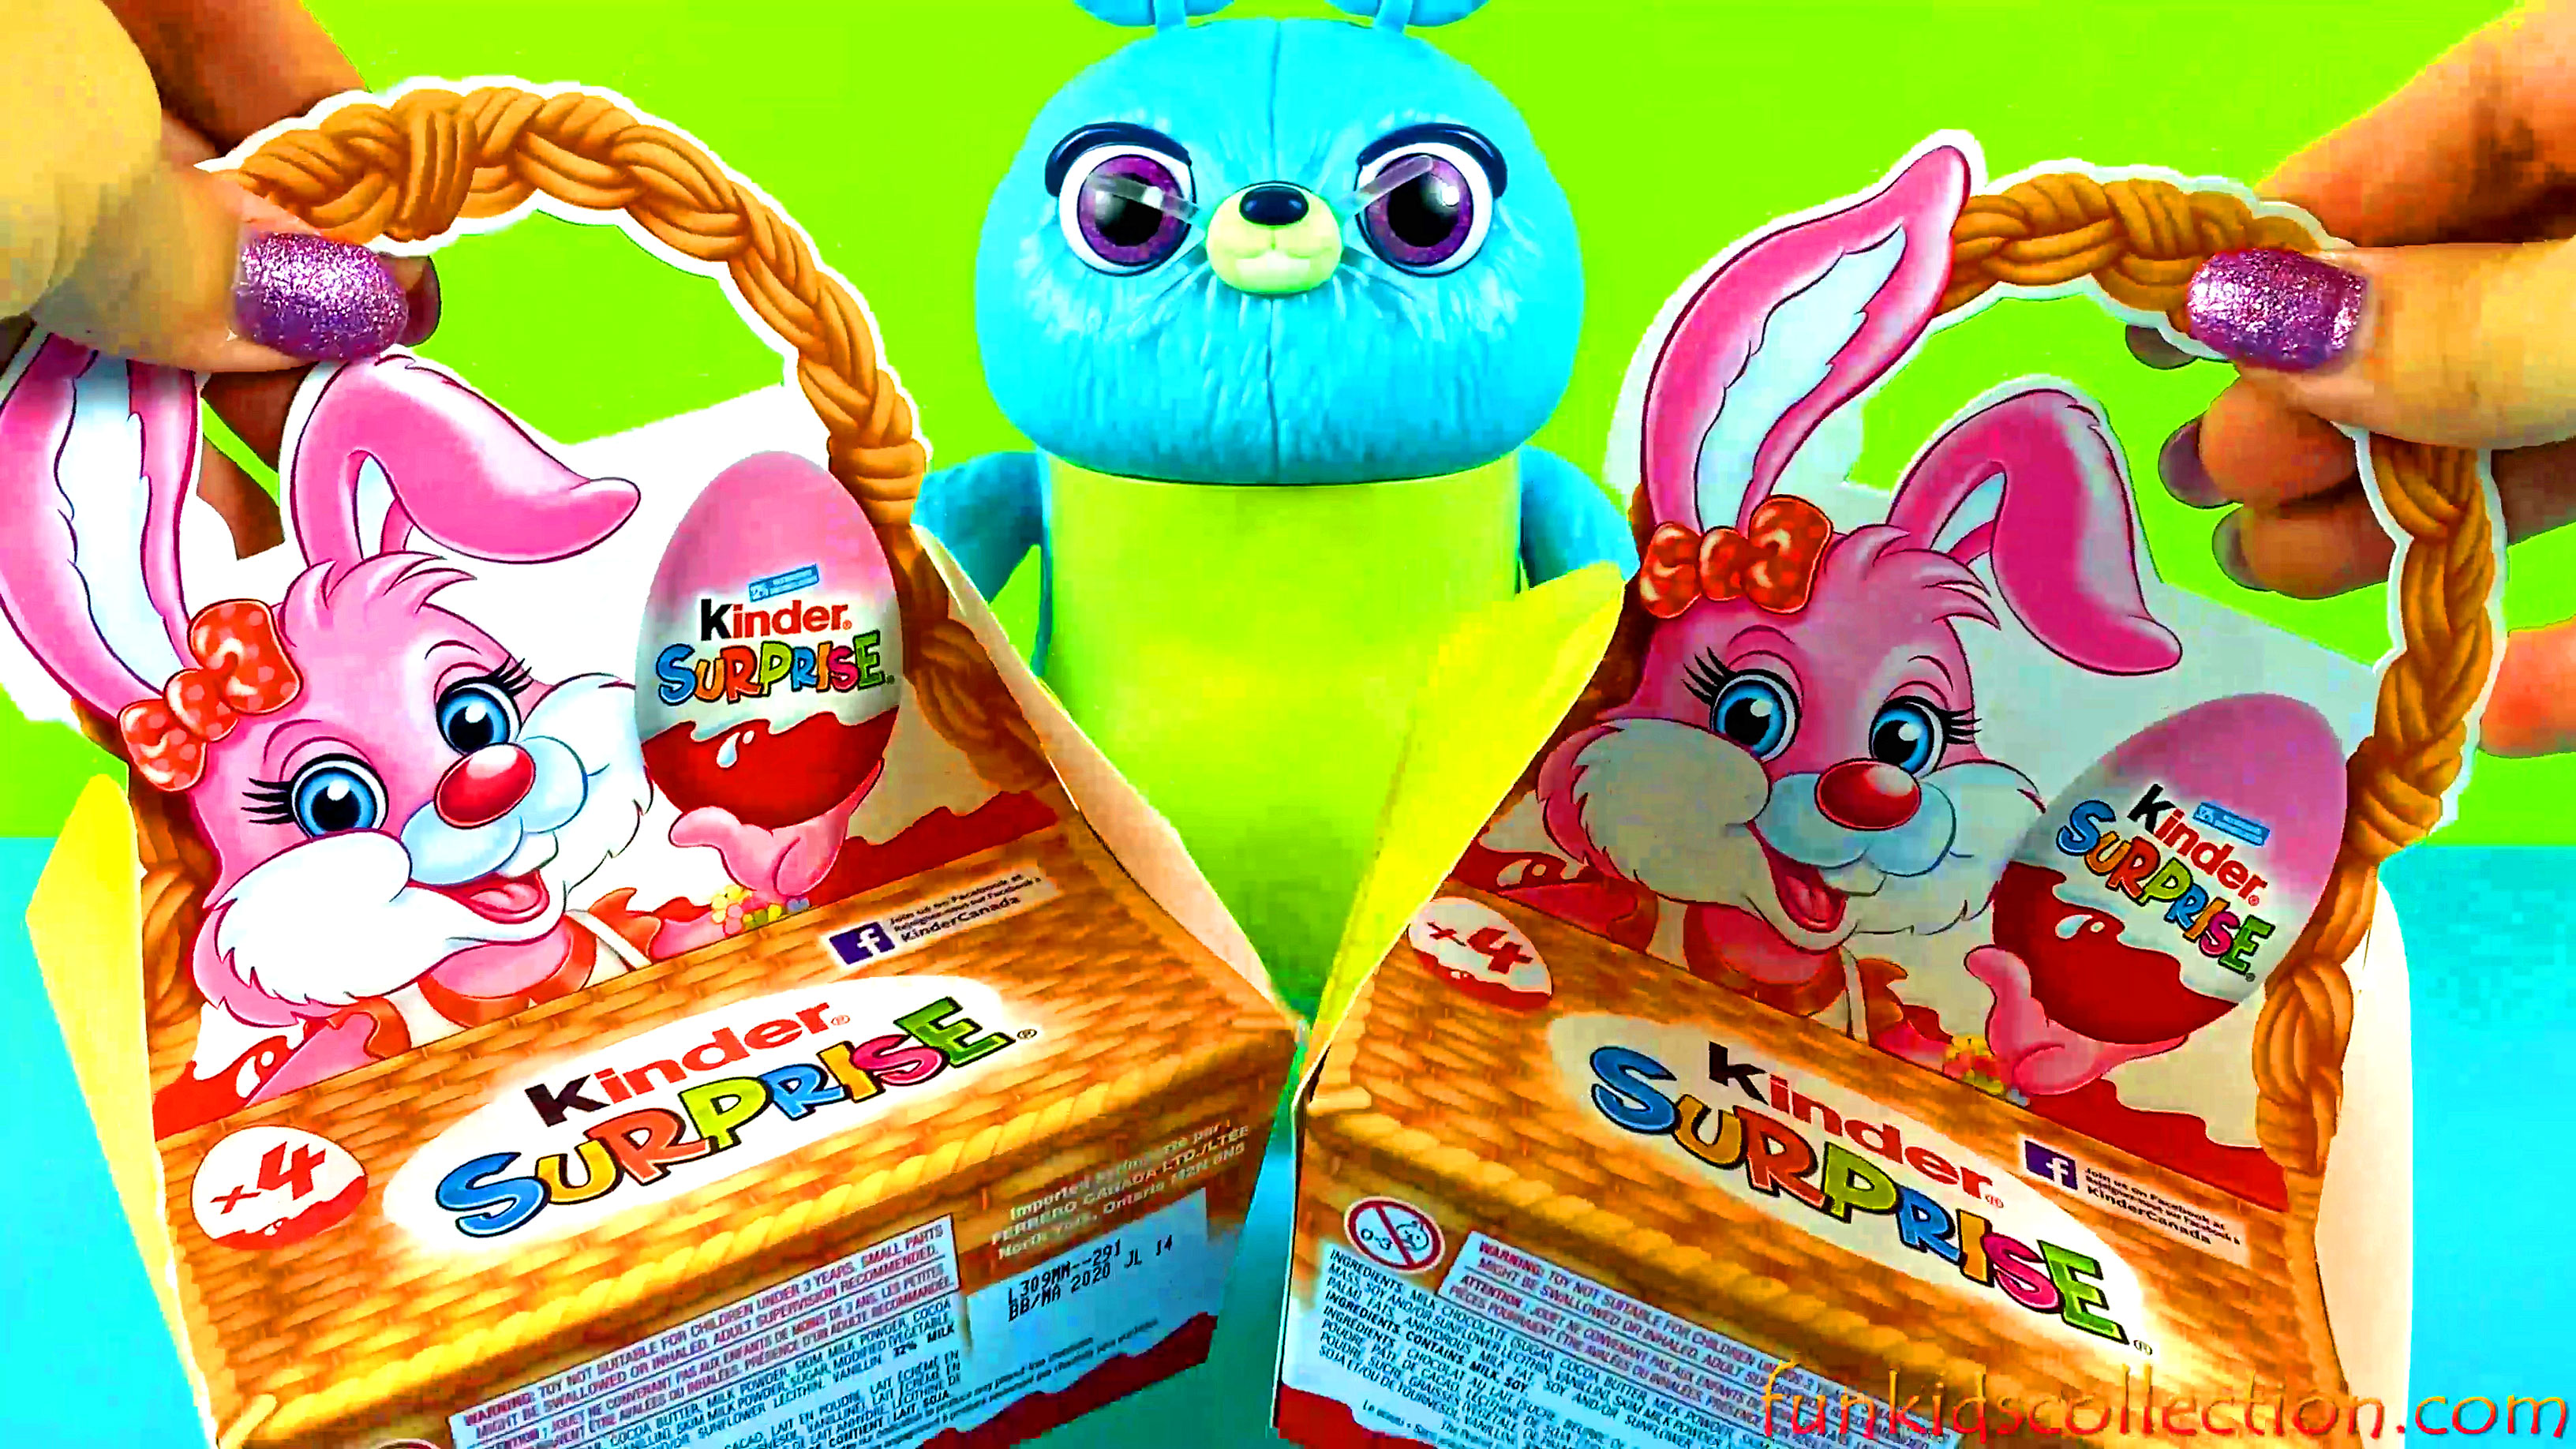 Kinder Easter Bunny Basket with Kinder Eggs Surprises | Kinder Easter Eggs Basket New Surprise Toys